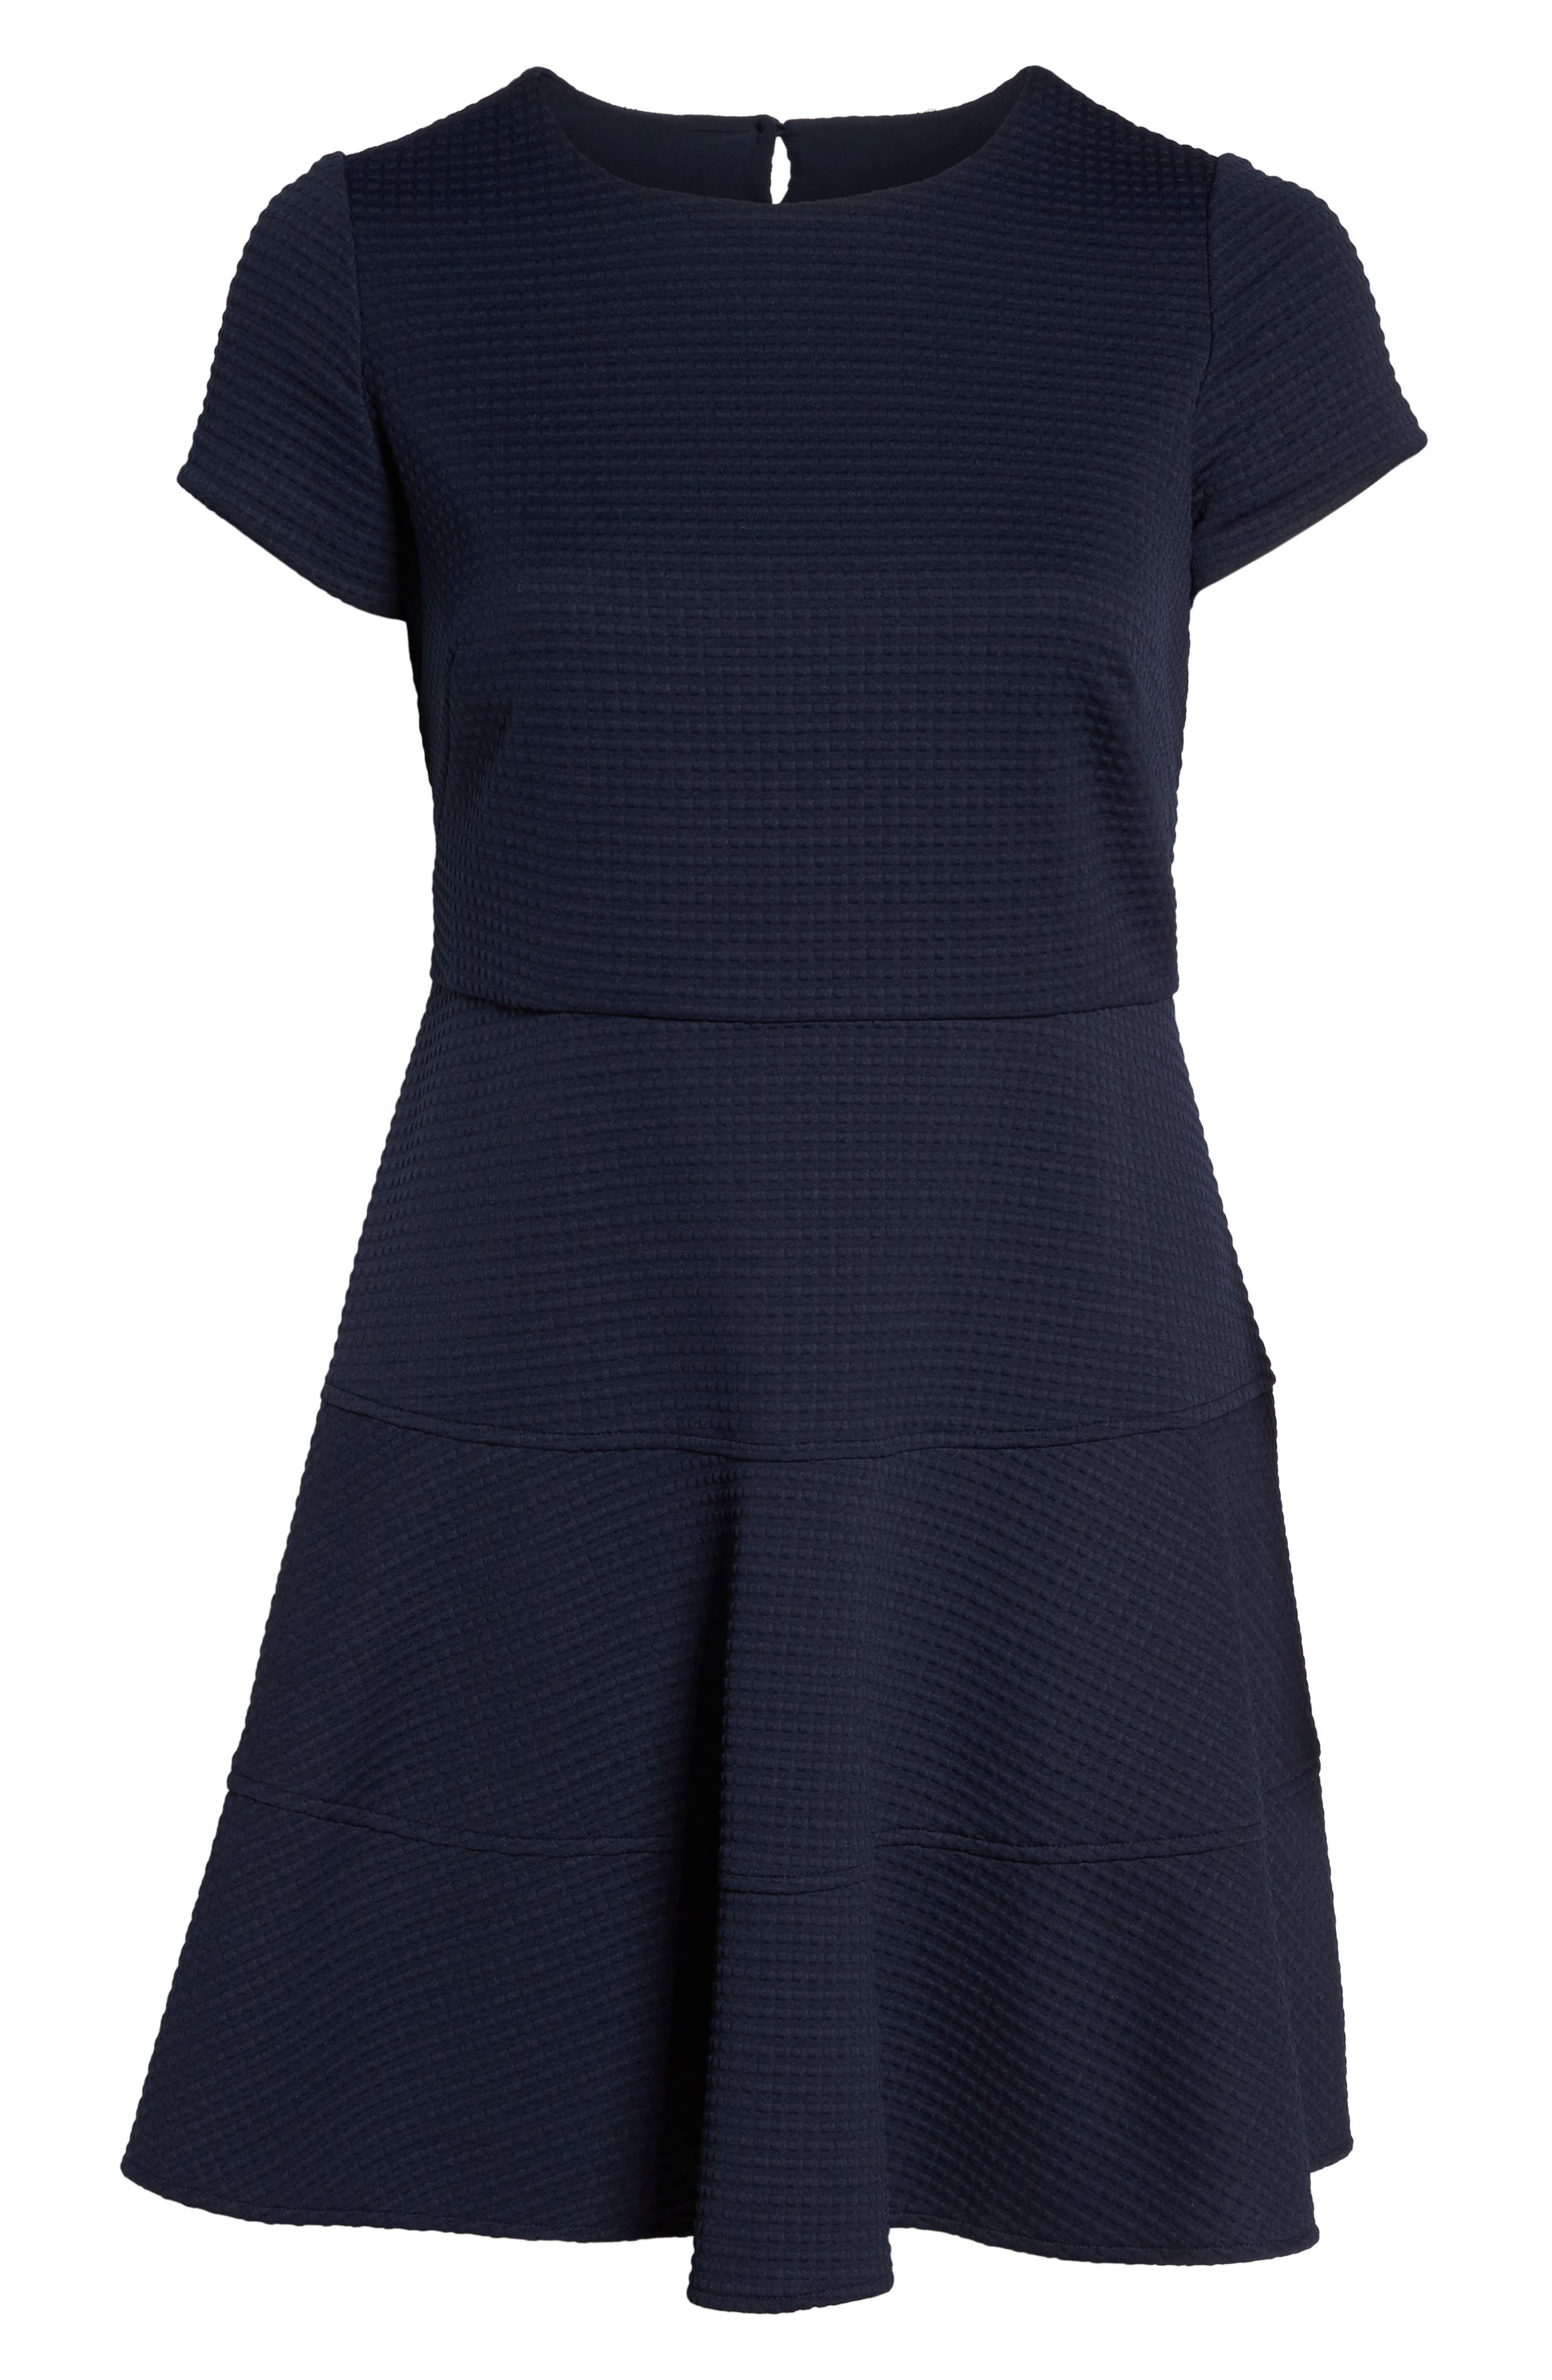 Fit & Flare Dress,                             Alternate thumbnail 6, color,                             410